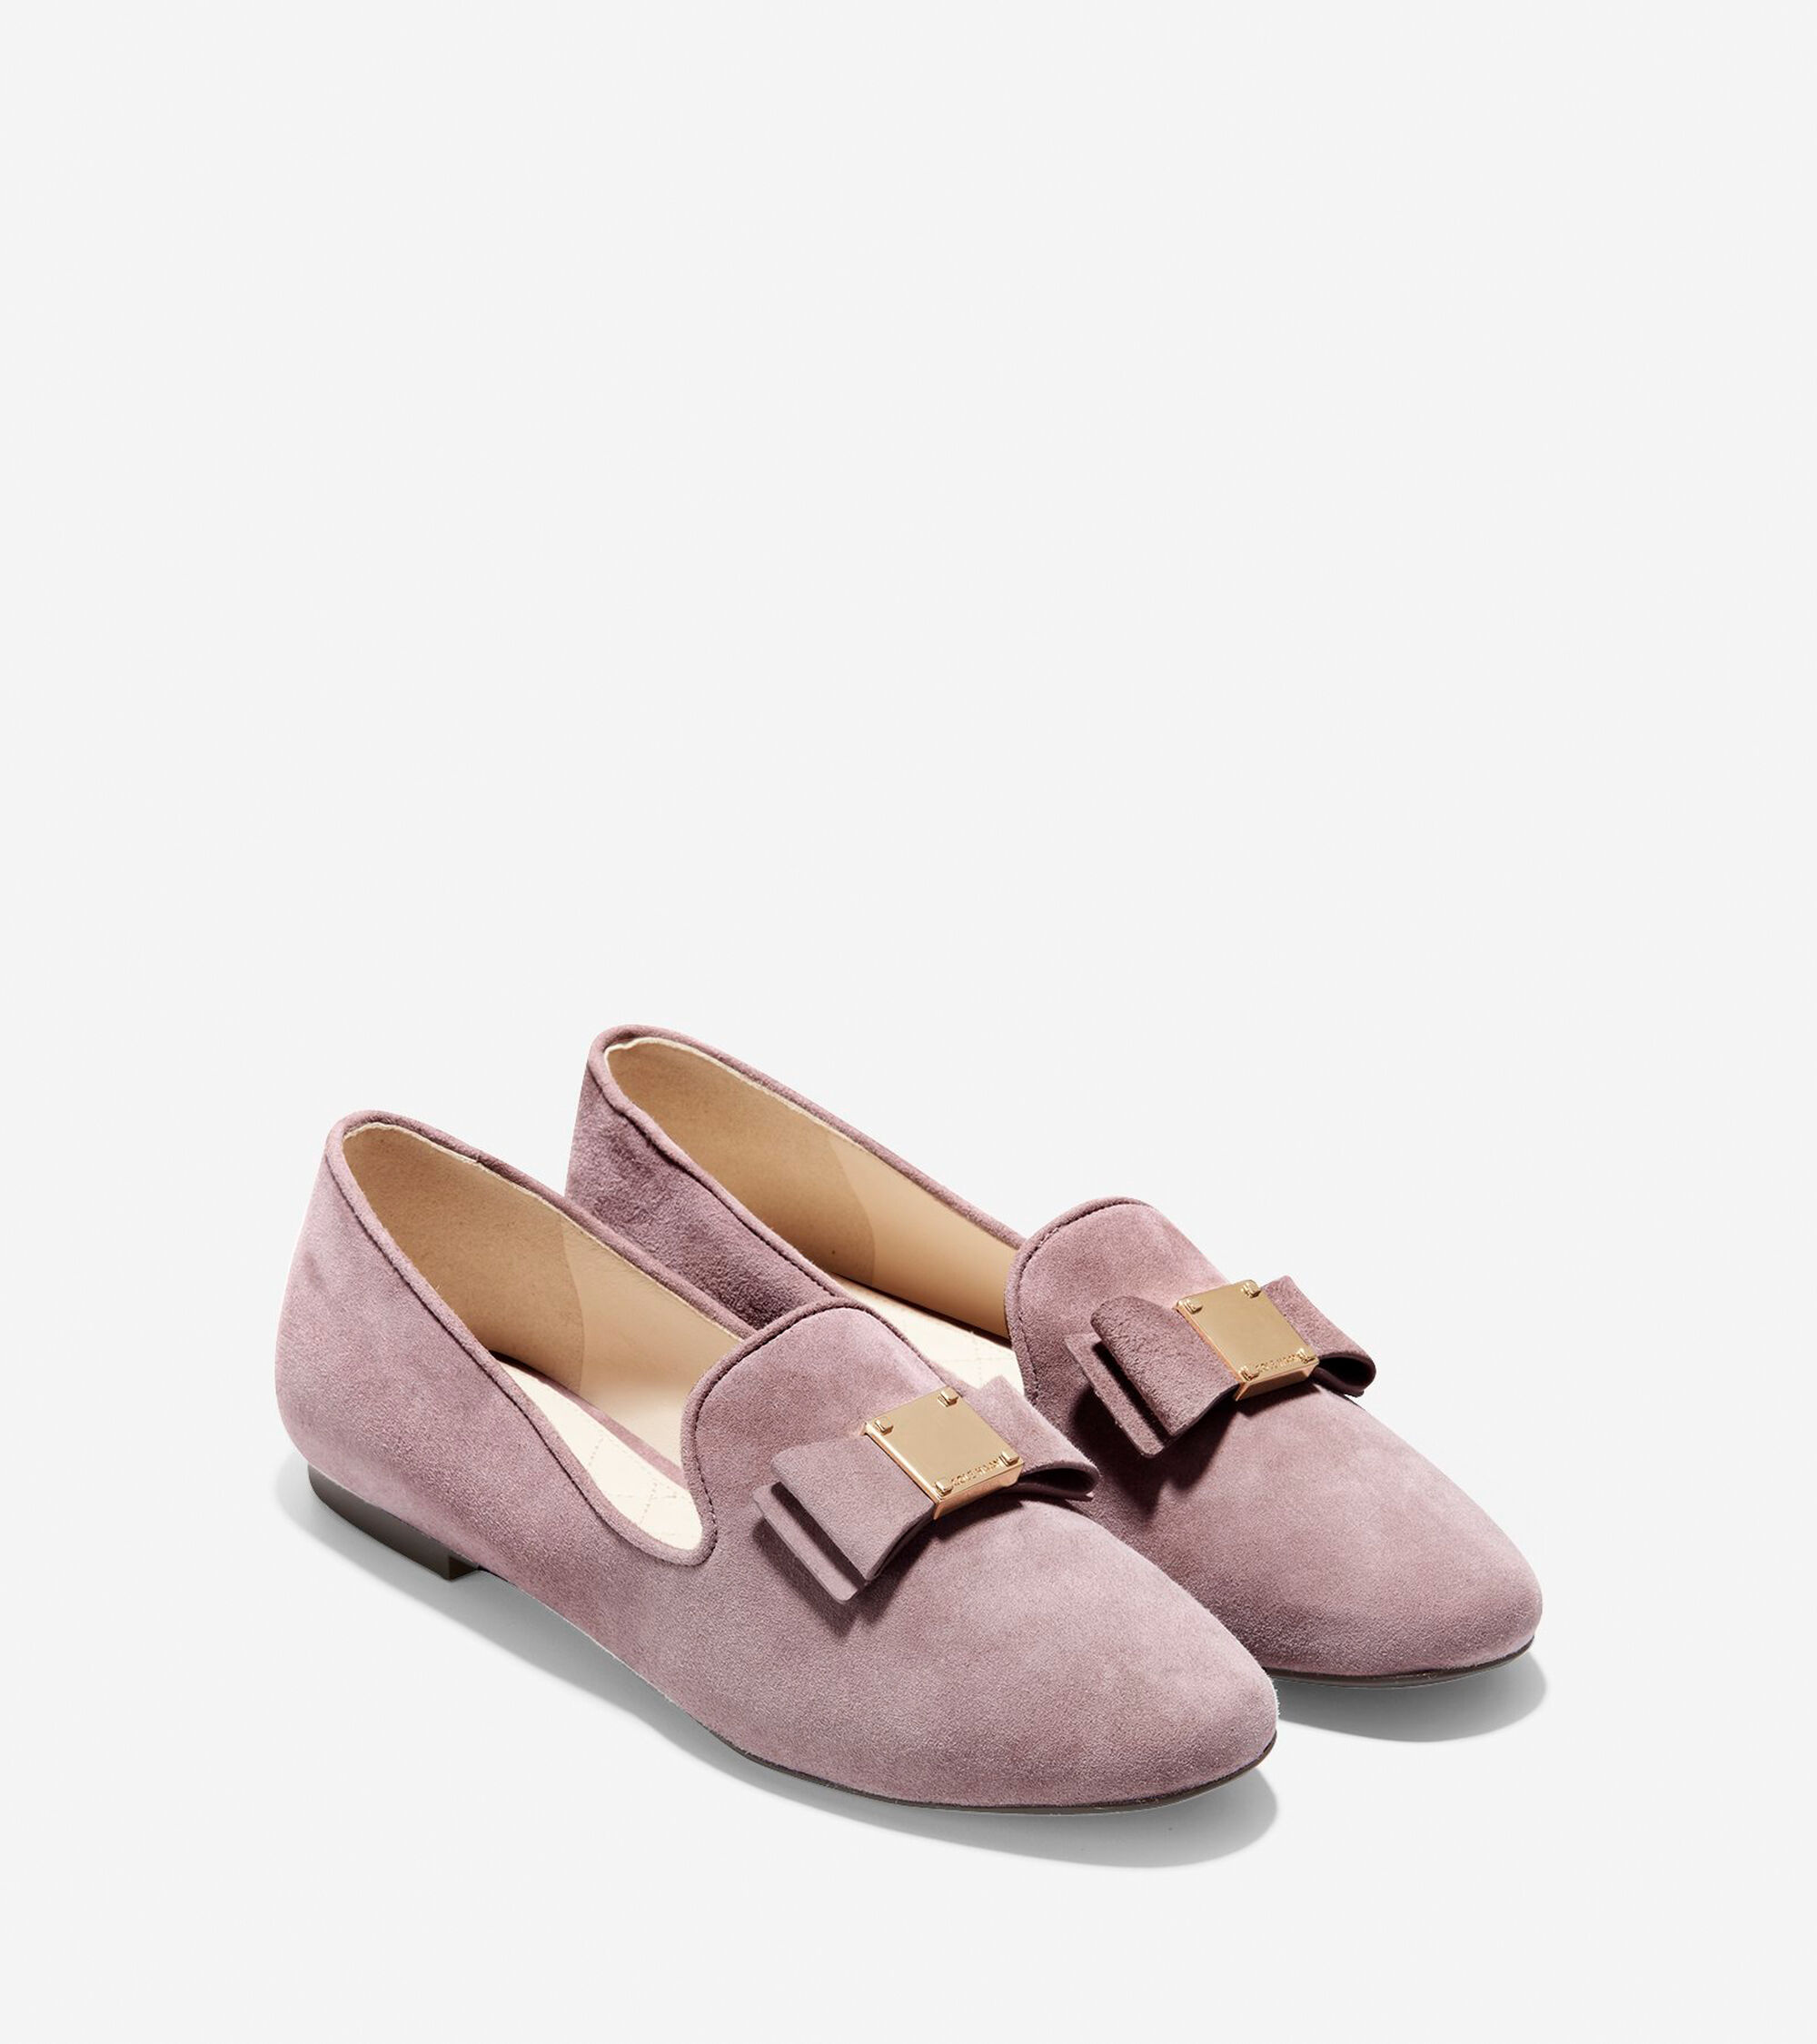 8968252a7c1 Women s Tali Bow Loafers in Twilight Mauve Suede